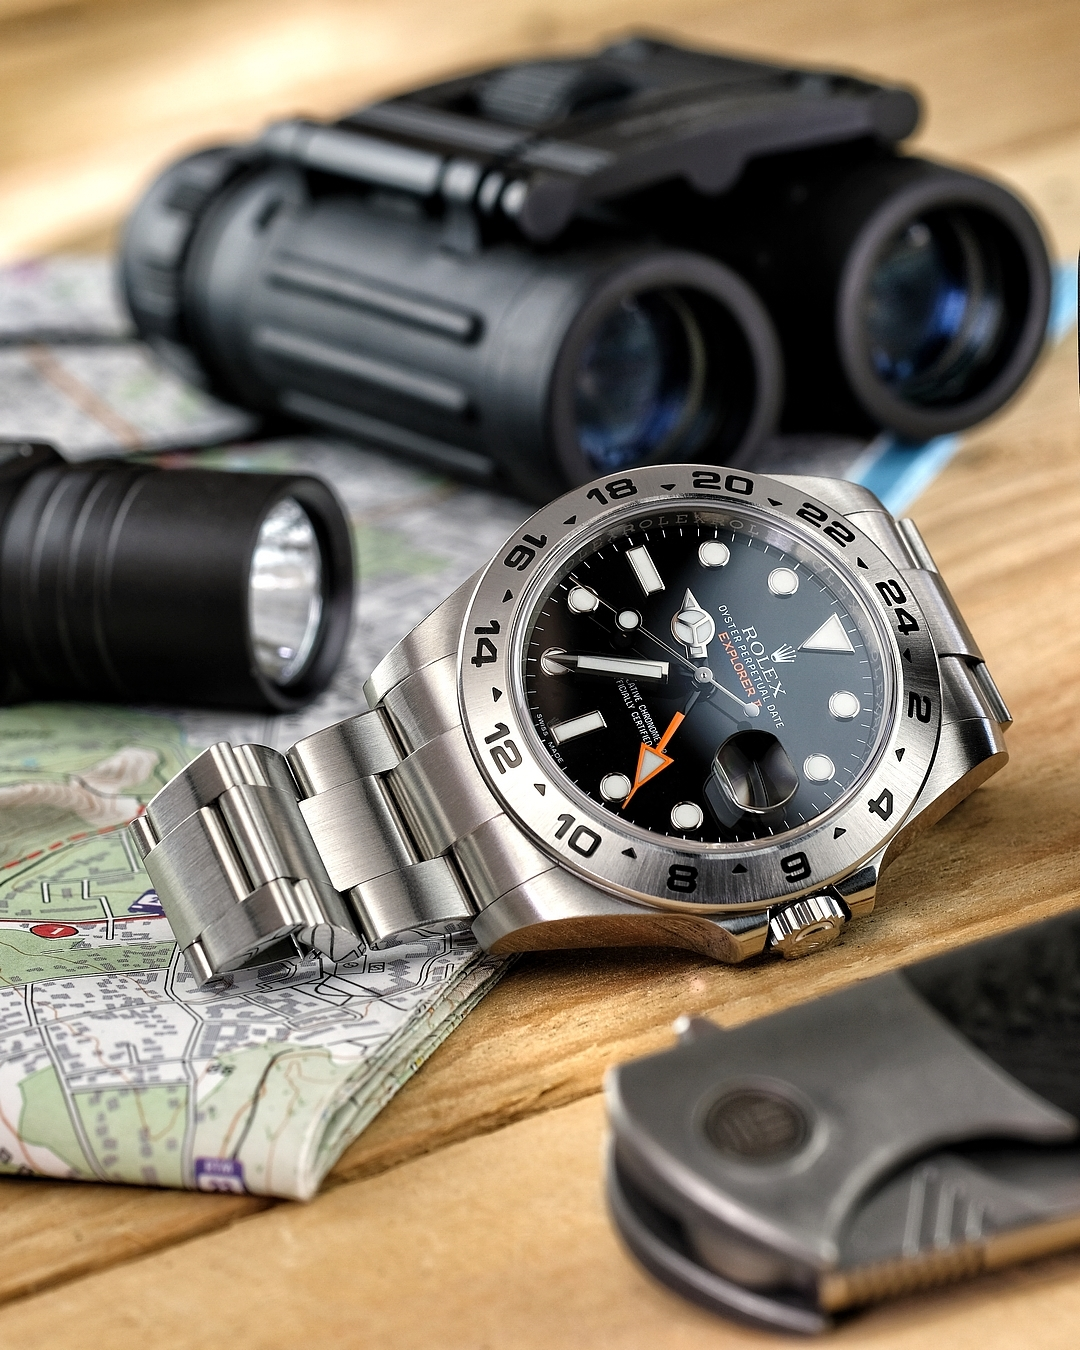 IN-DEPTH: The Rolex Explorer II Ref.216570, sleeper classic or on the brink of extinction?